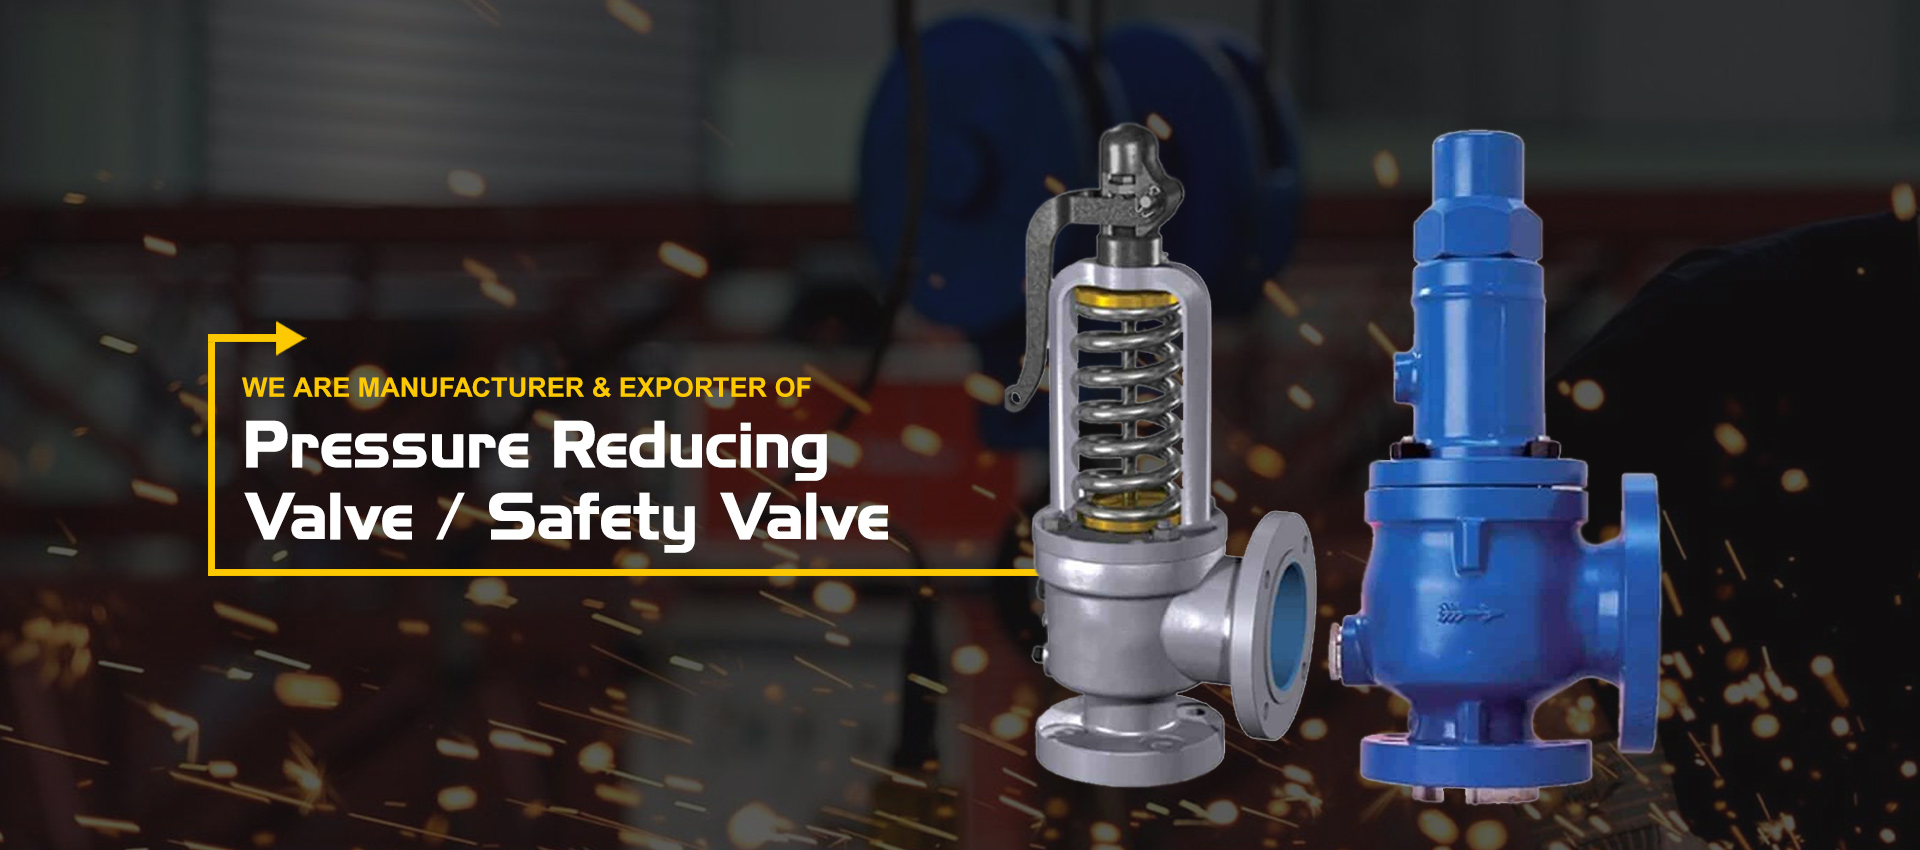 #alt_tagPressure Reducing Valve/ Safety Valve Manufacturer